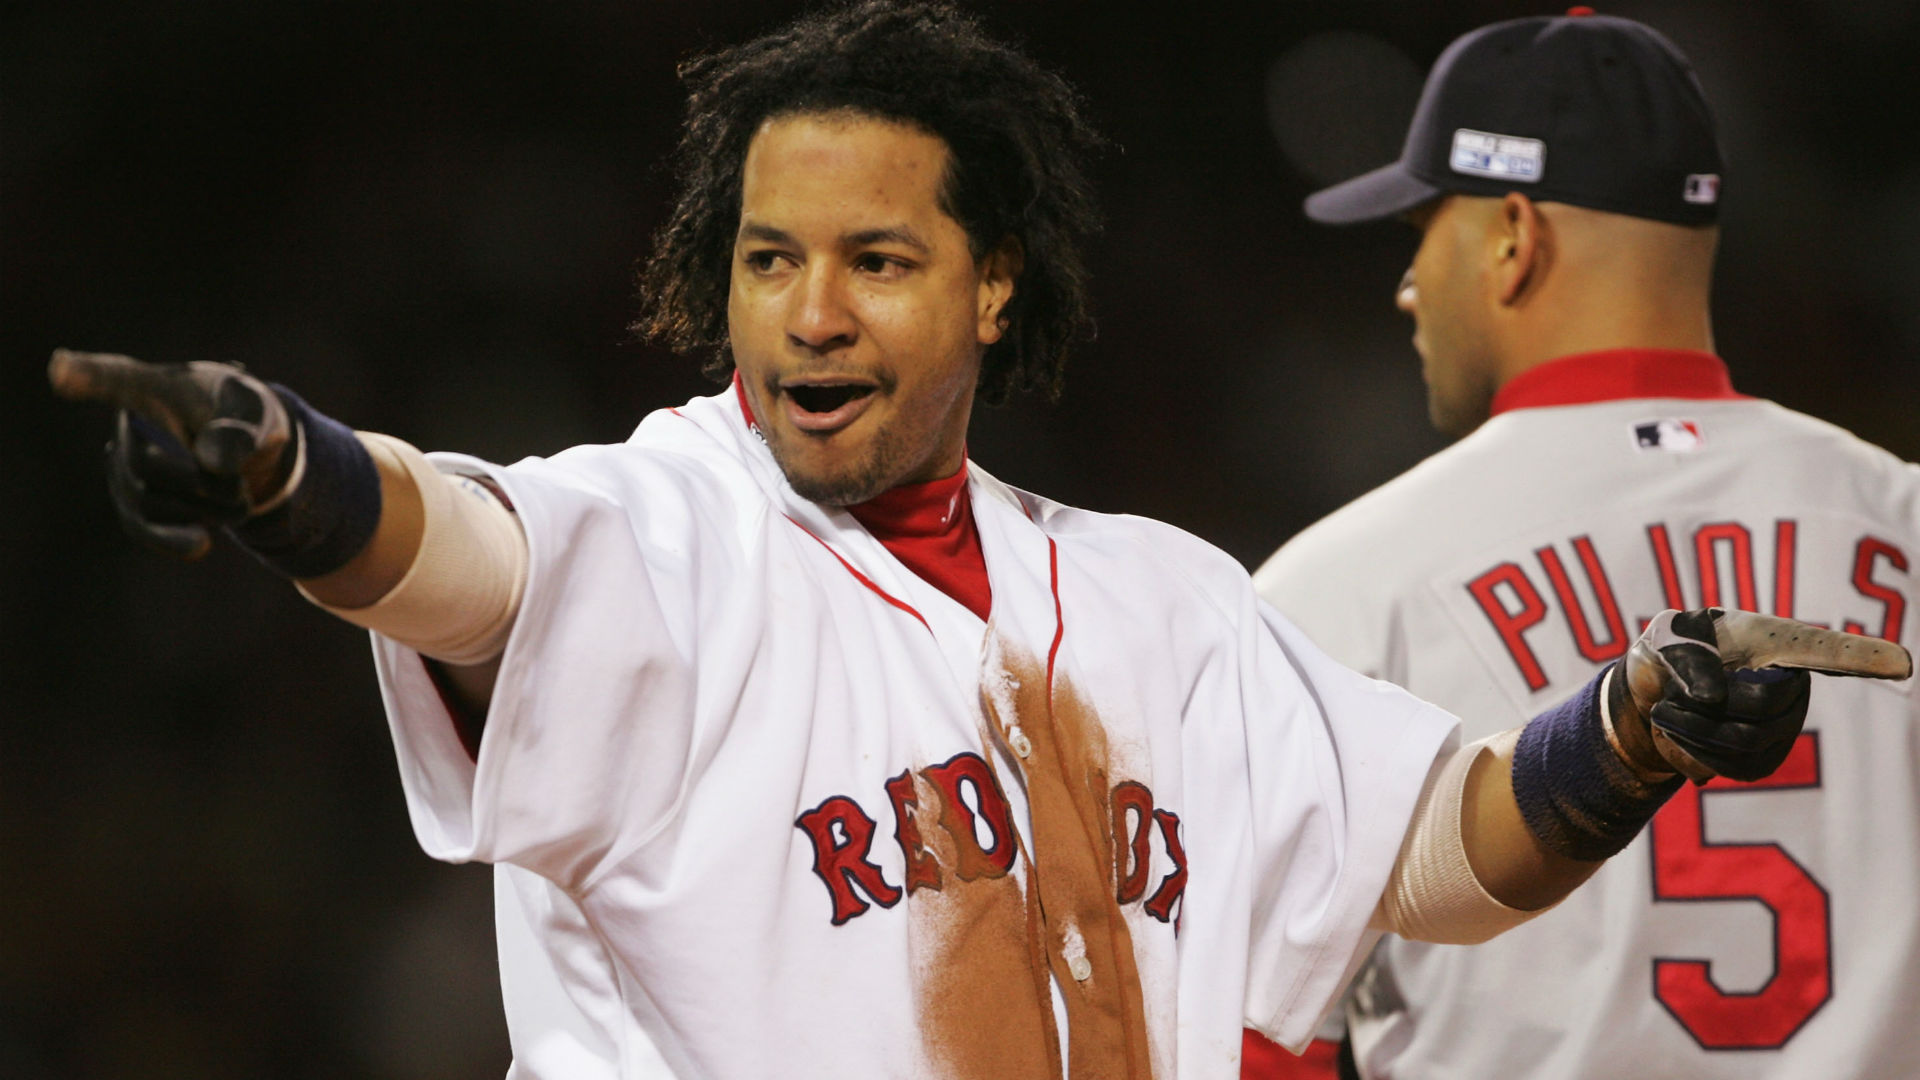 Pedro Martinez says Manny Ramirez gave the 2004 Red Sox Viagra